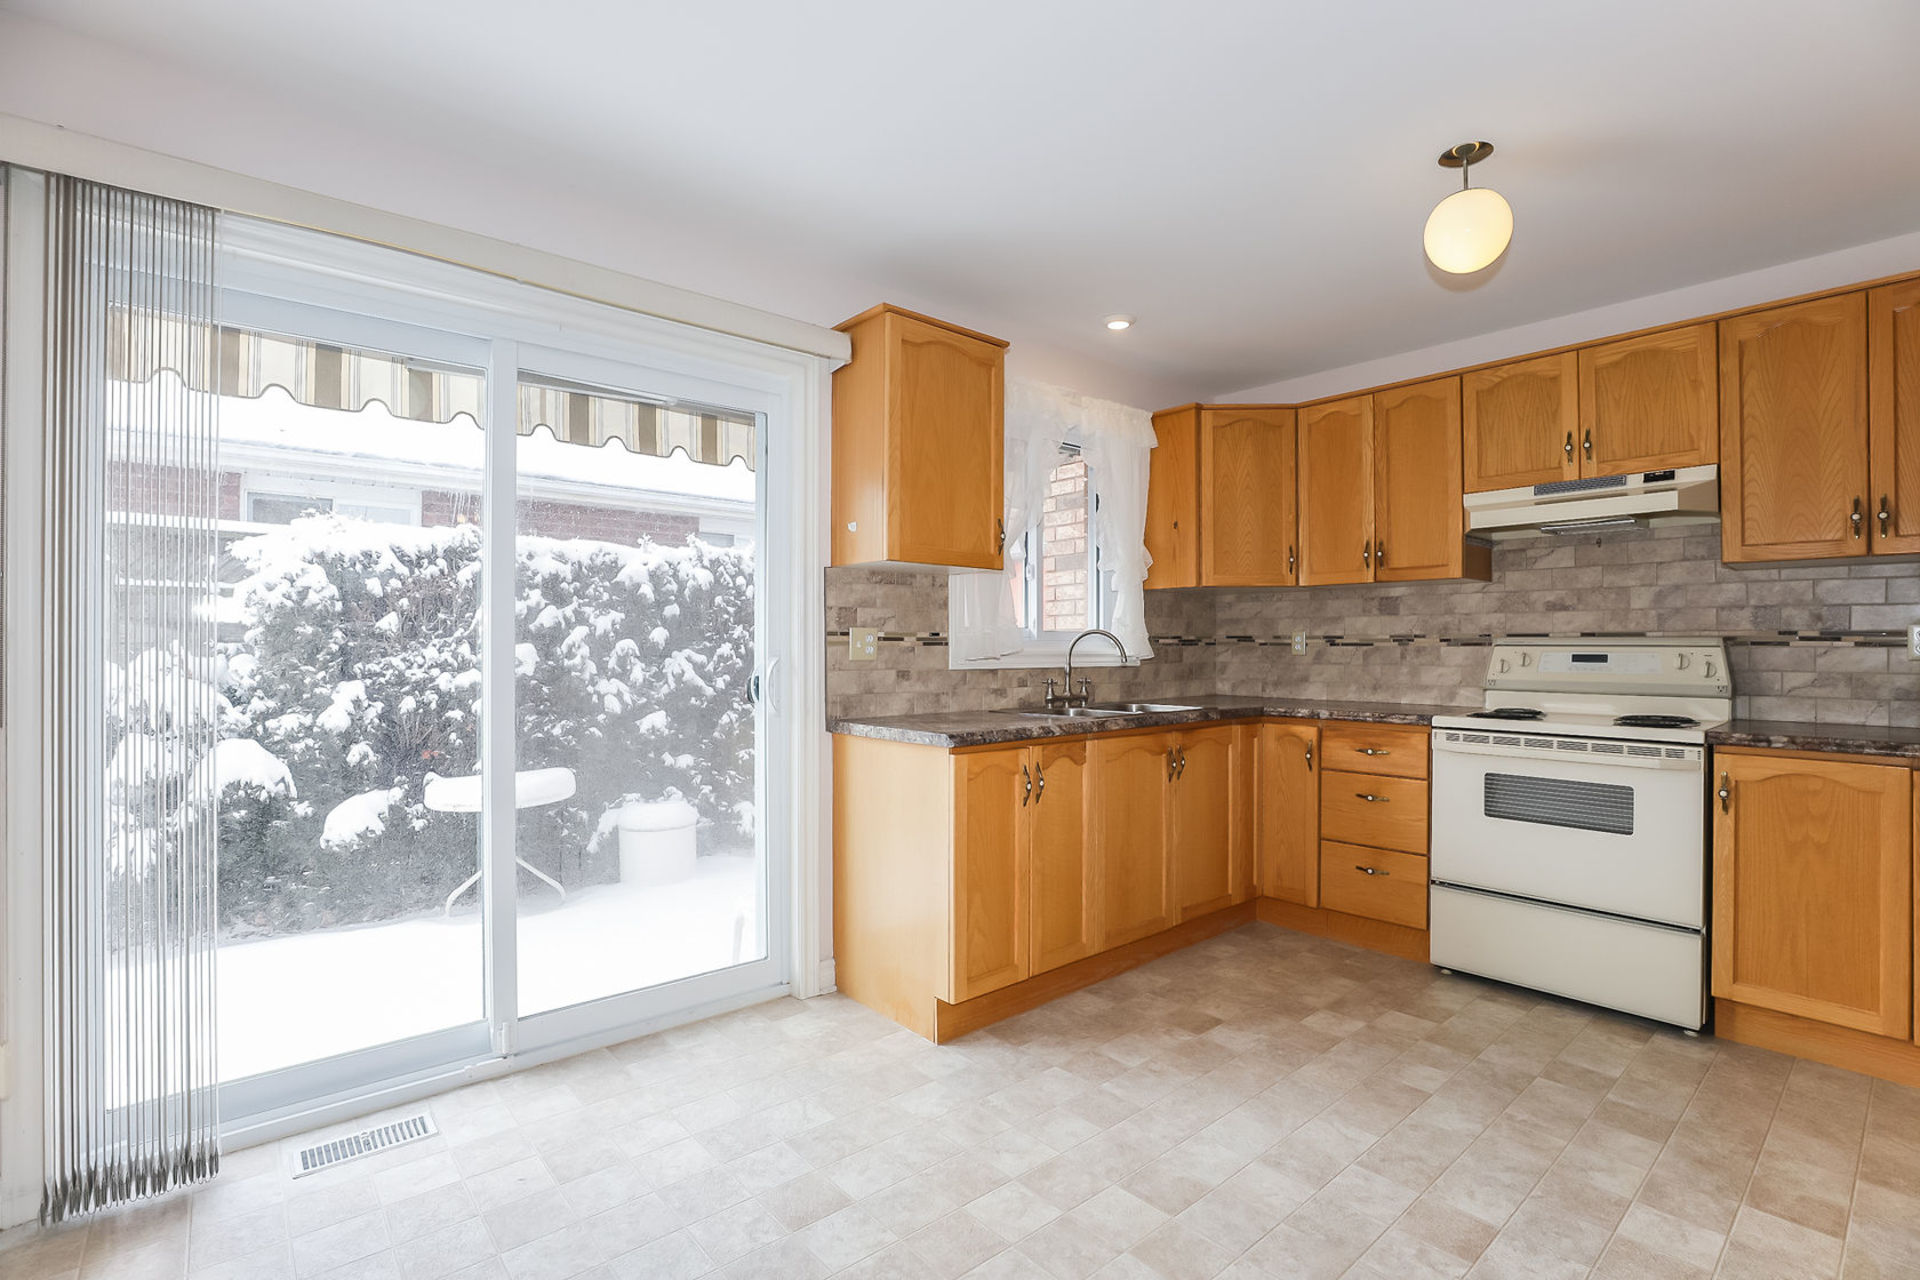 virtual-tour-292122-09 at 47 Colonial Cresent, Grimsby